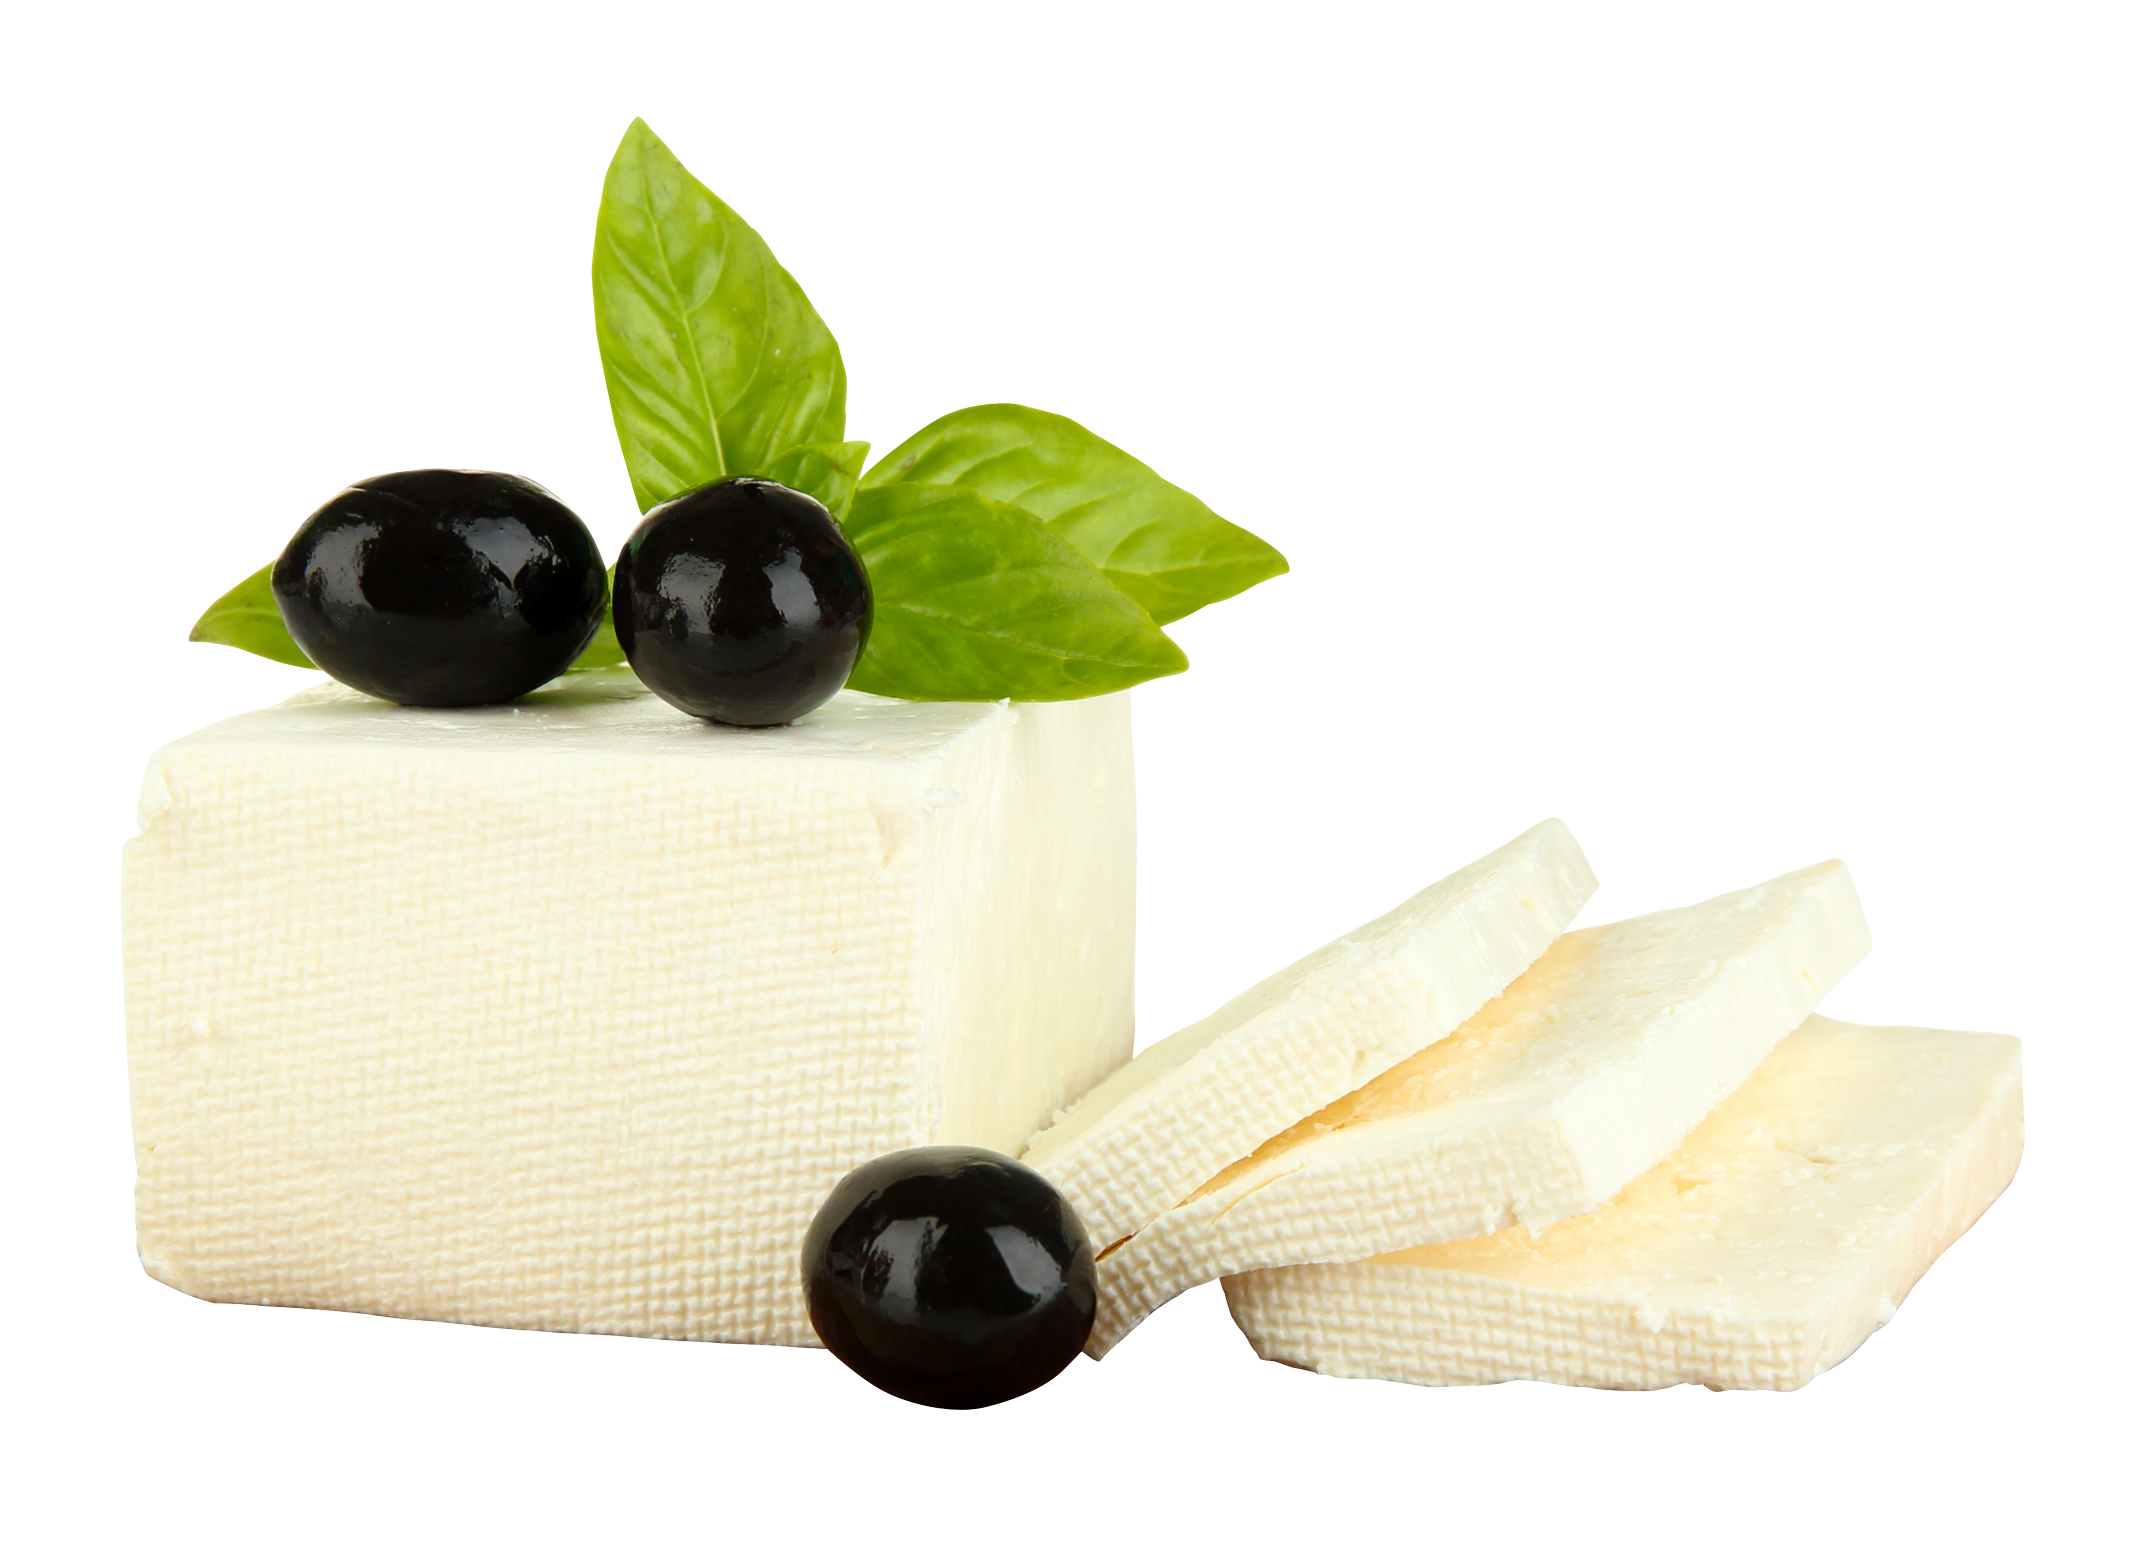 Fresh Black Olives And Cheese Images image #48418